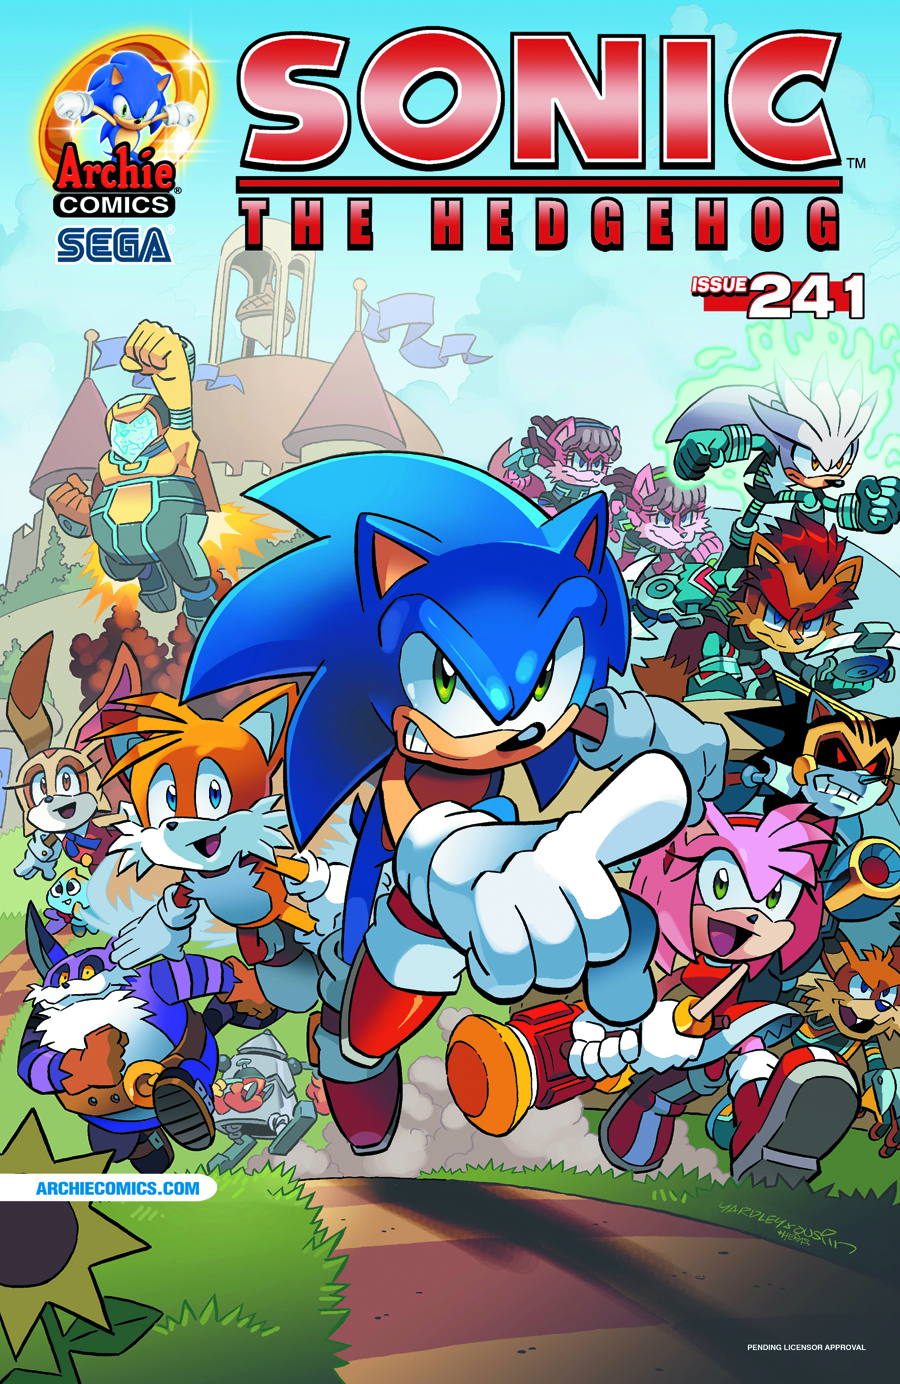 SONIC THE HEDGEHOG #241 REG CVR